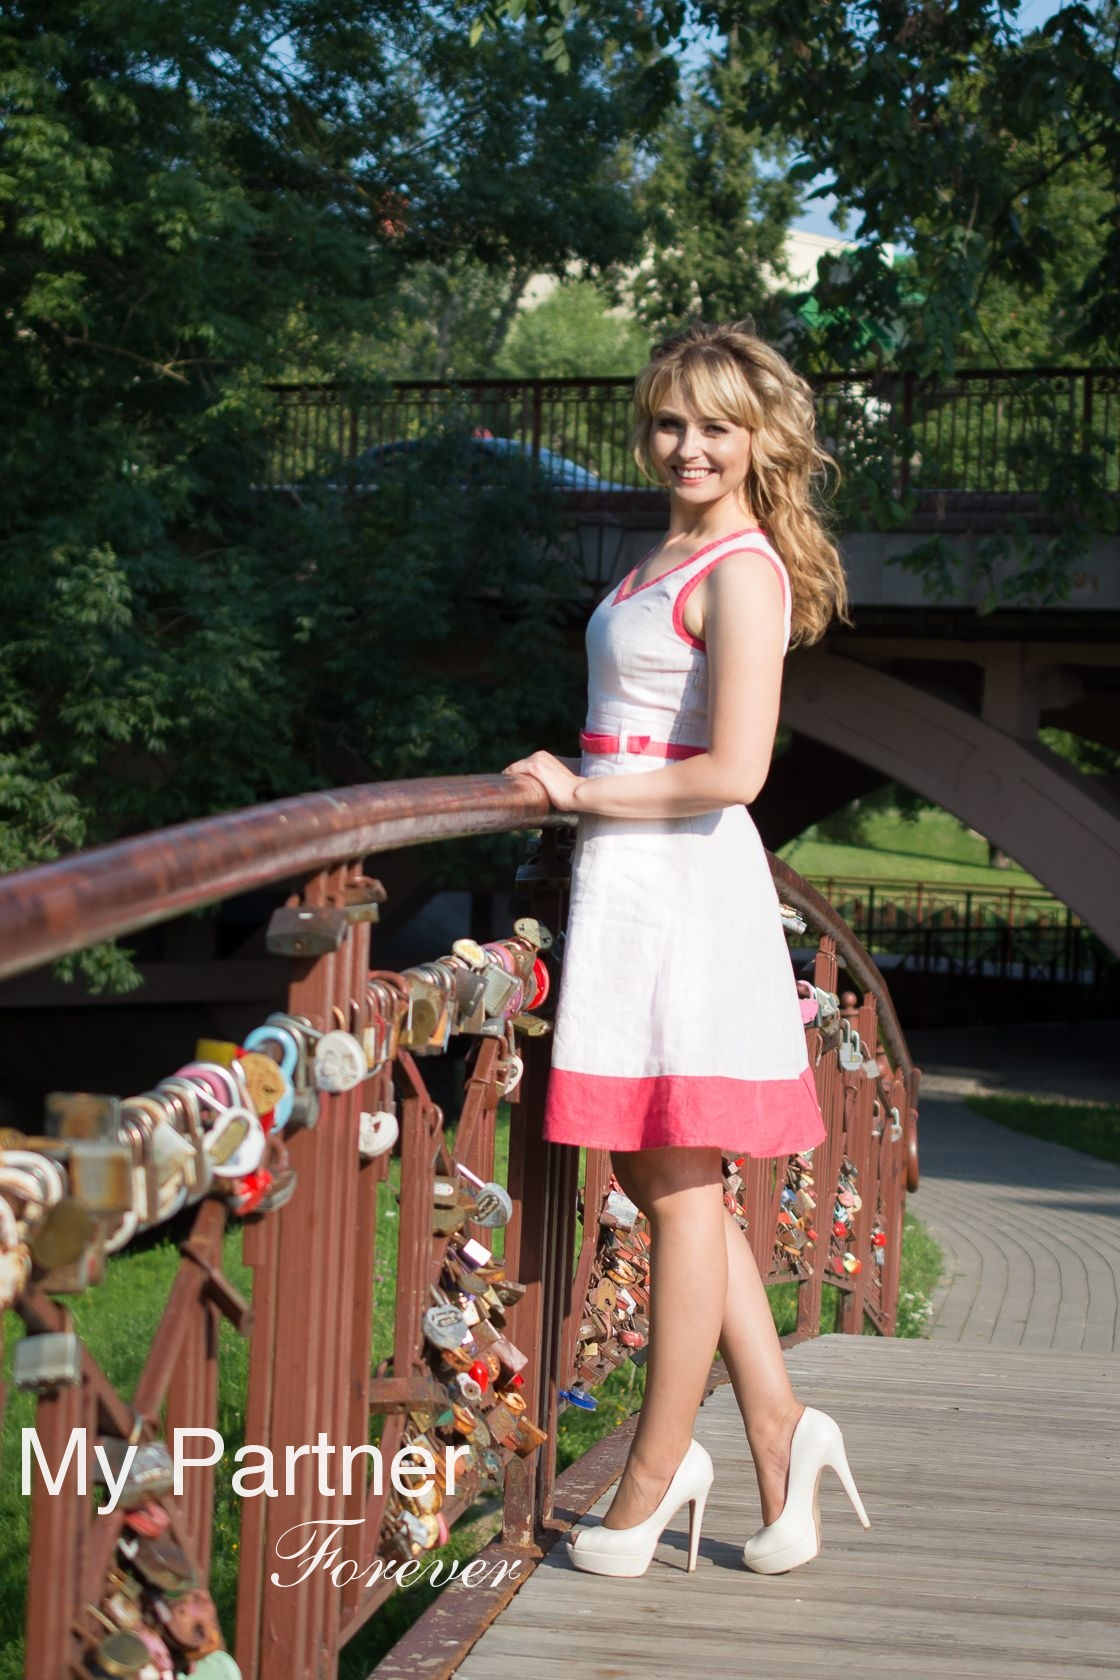 Dating Service to Meet Single Belarusian Girl Olesya from Grodno, Belarus